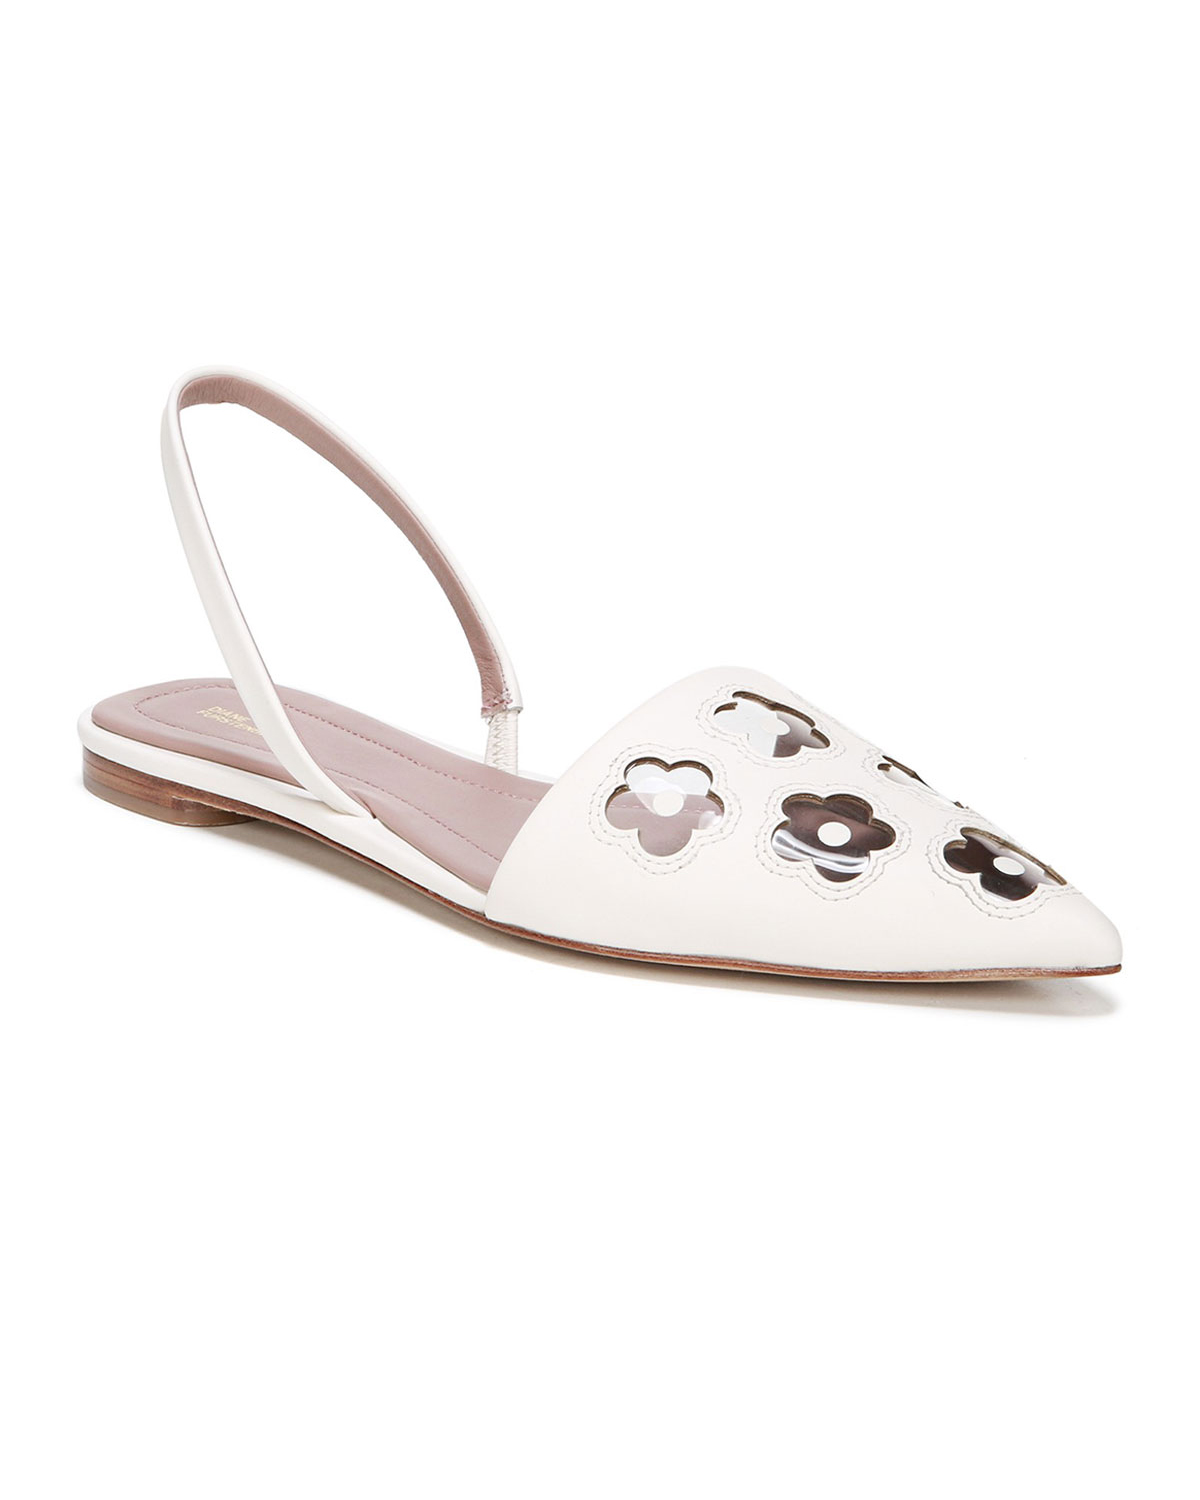 white leather and pvc flower flats